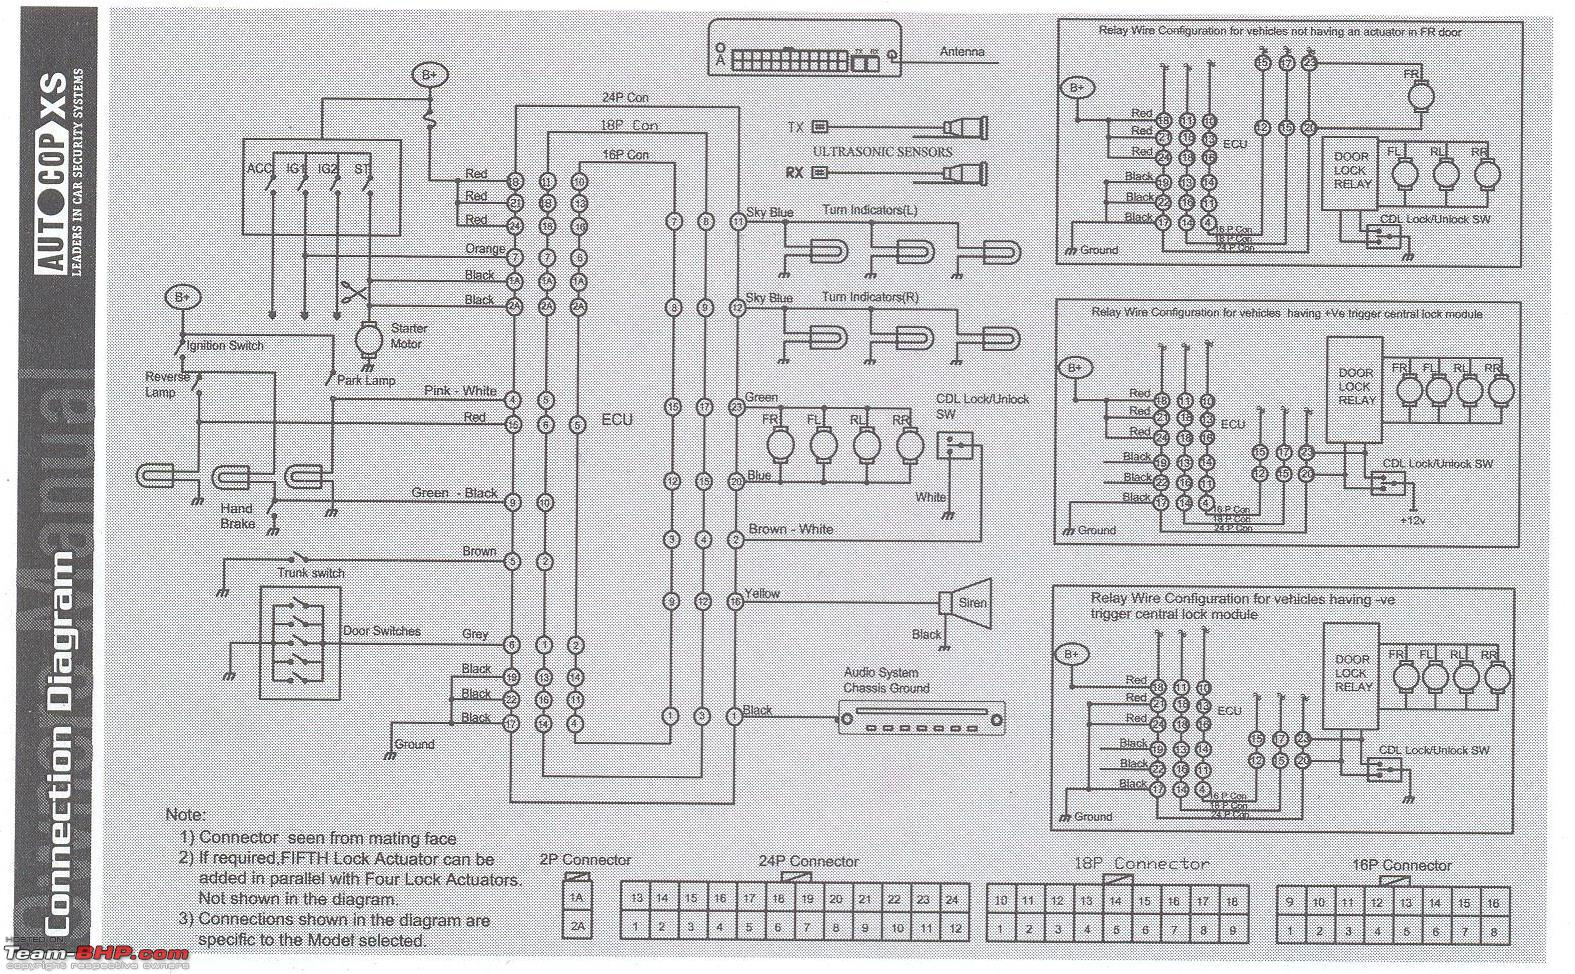 wiring diagram of hyundai santro